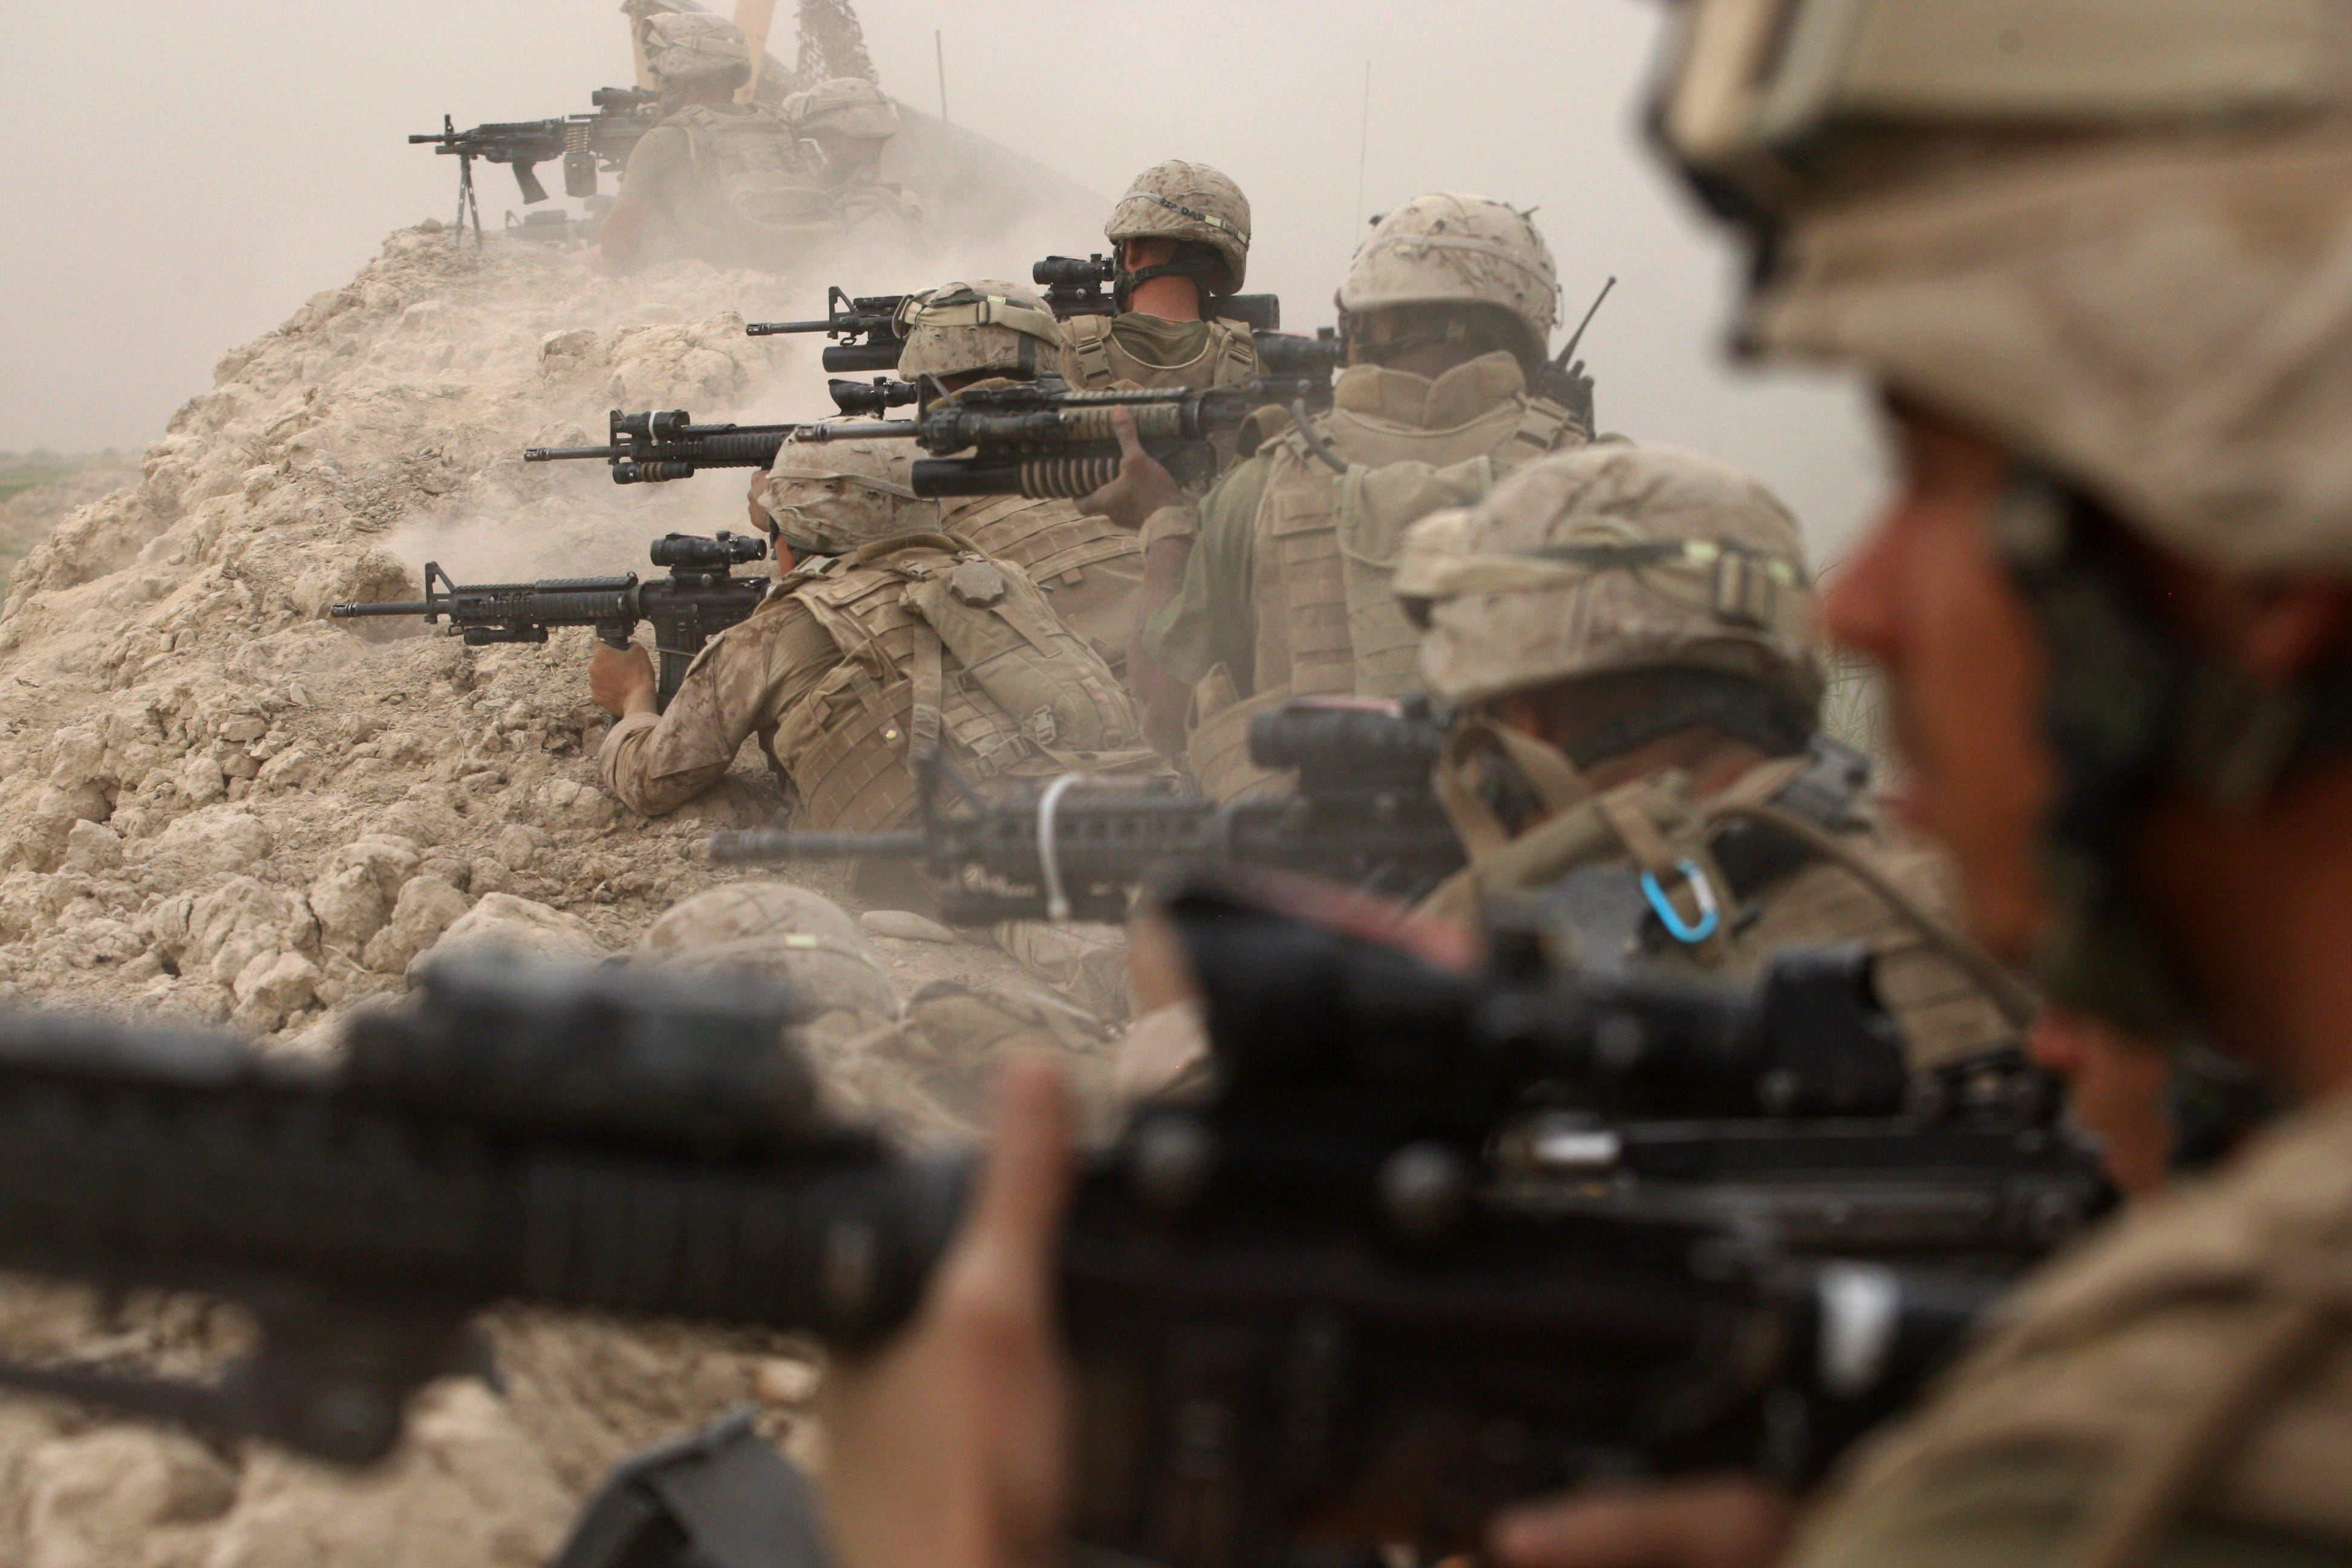 U.S. Marines exchange fire with the Taliban in Afghanistan on May 2, 2008.